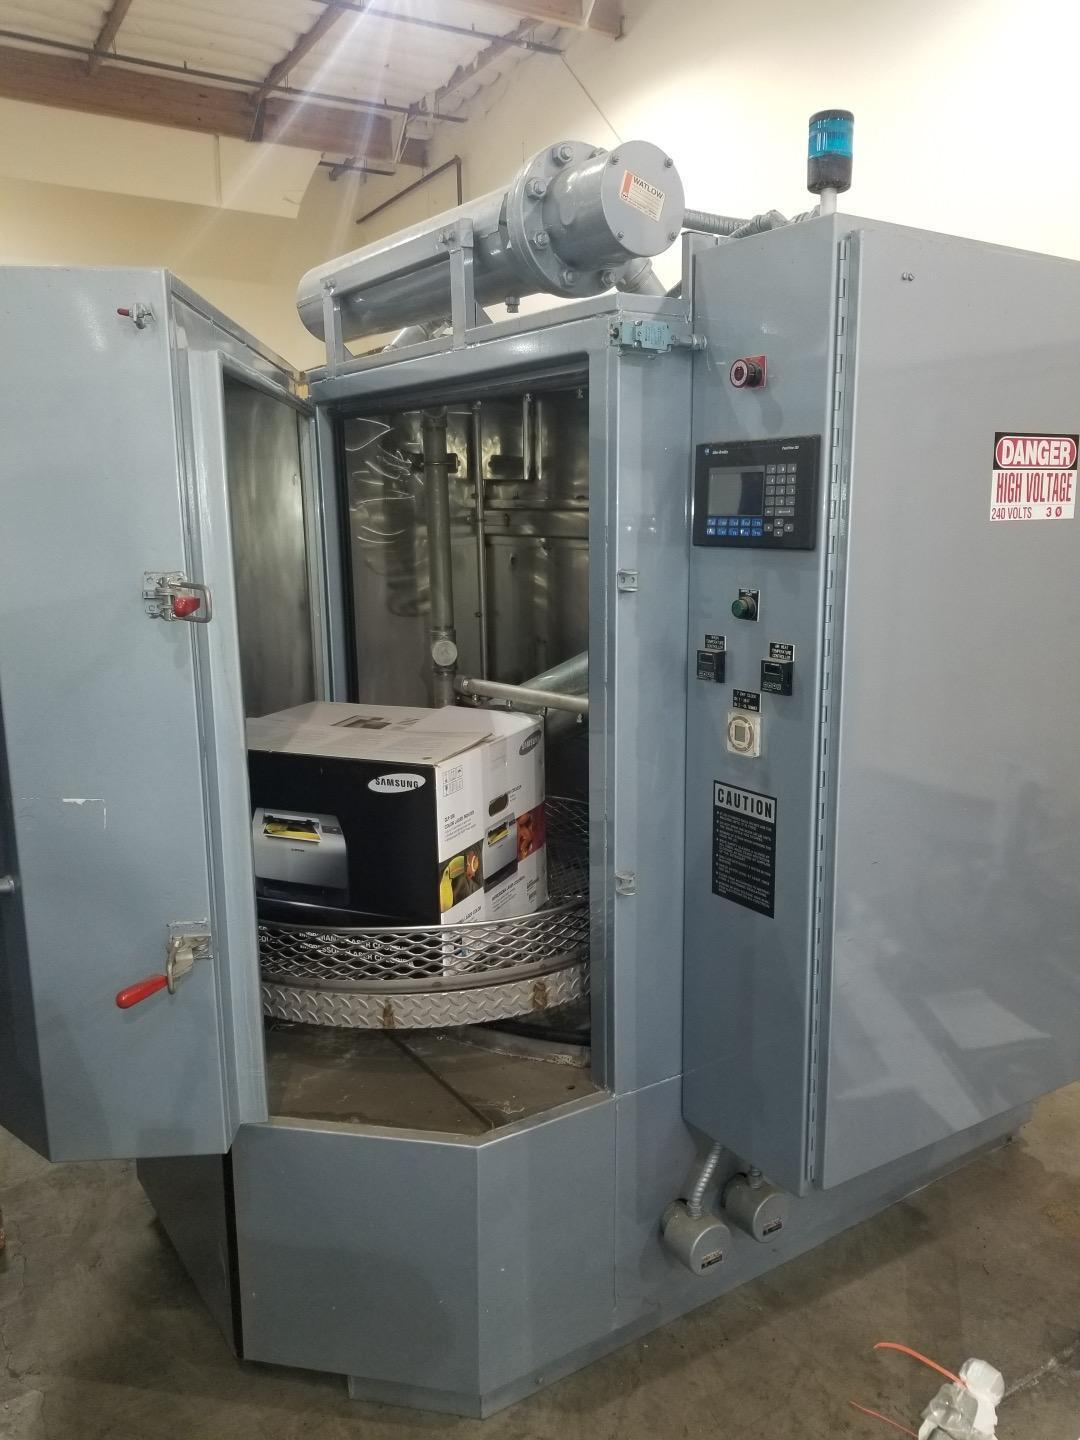 "Better Engineering F-4000-P Rotary Parts Washer Basically, 40"" Turn Table Basket, 40"" Work Ht., Tank 140 Gallons, Heat: 18 kW, Timer, 5 HP, unused - New 1999 - NEW PRICE $40K+"